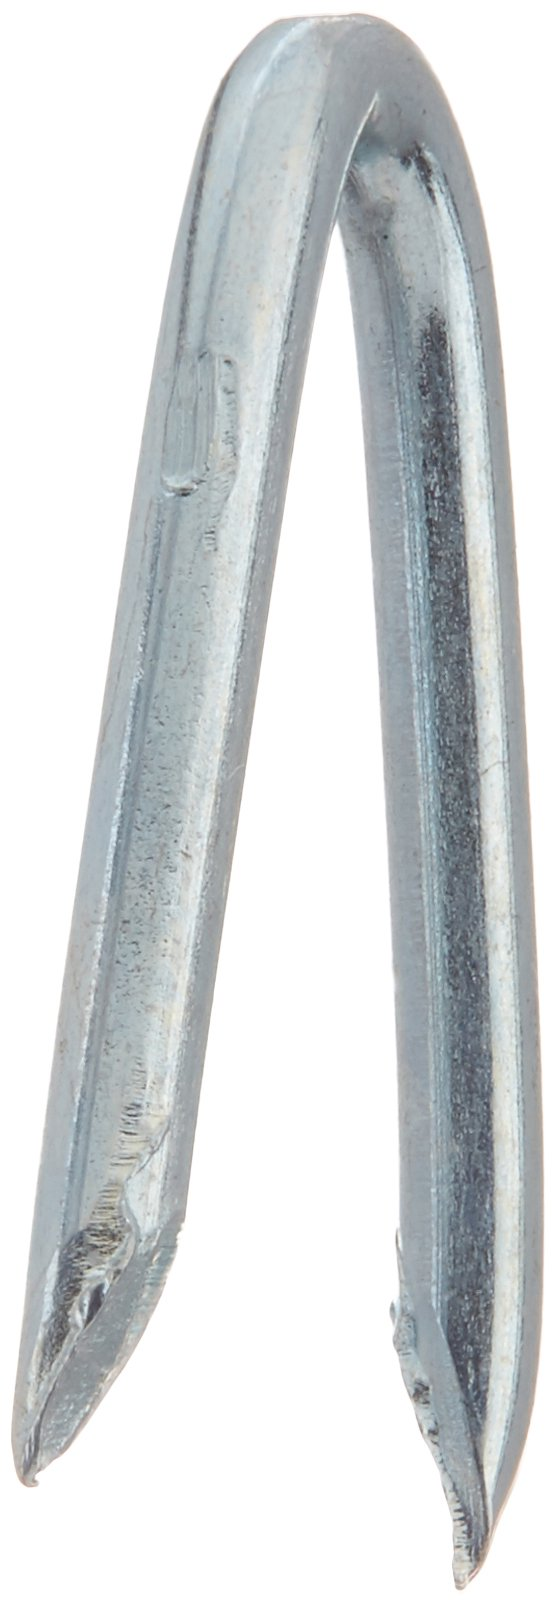 The Hillman Group 532698 Fence Staples